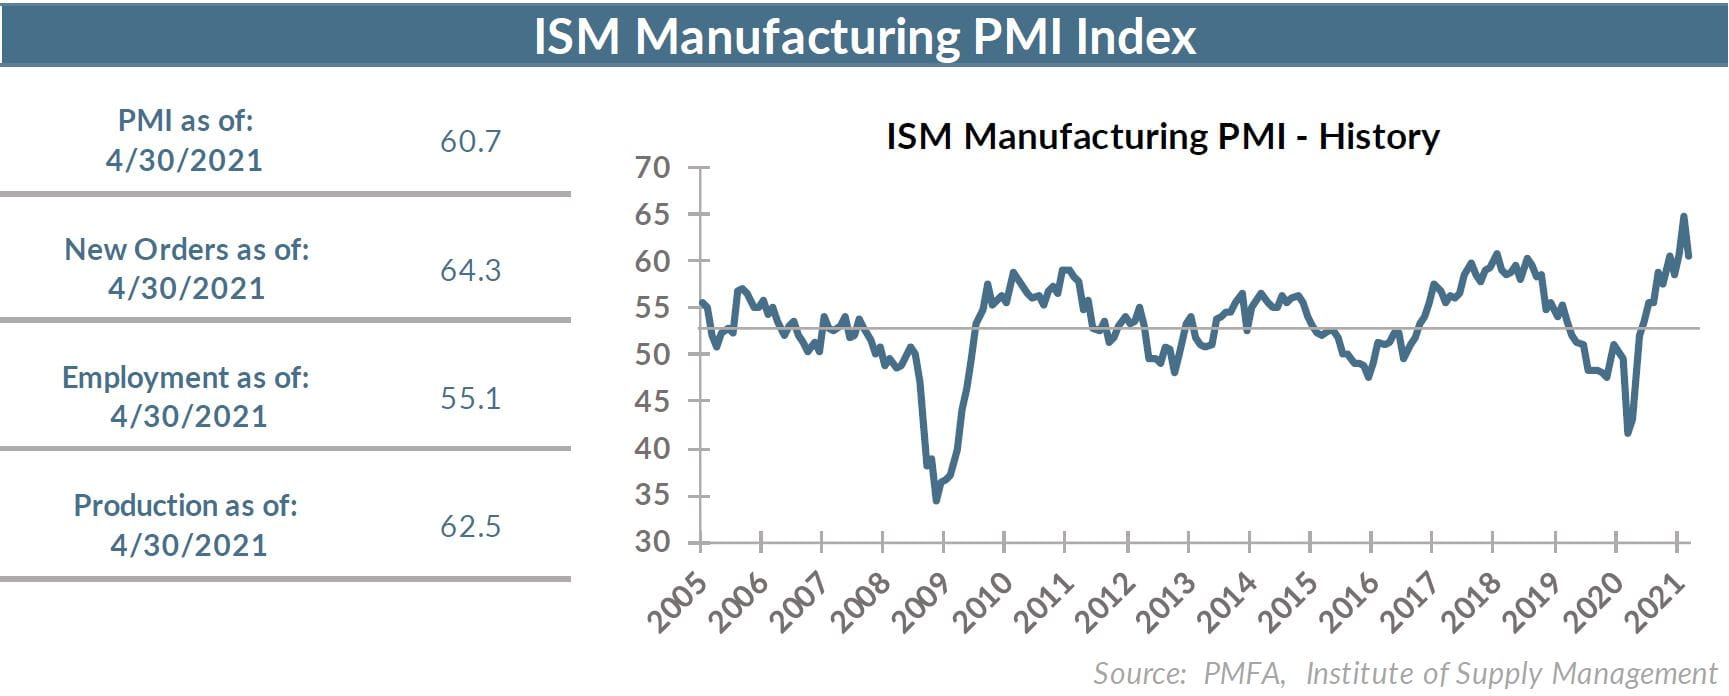 ISM Manufacturing PMI - History